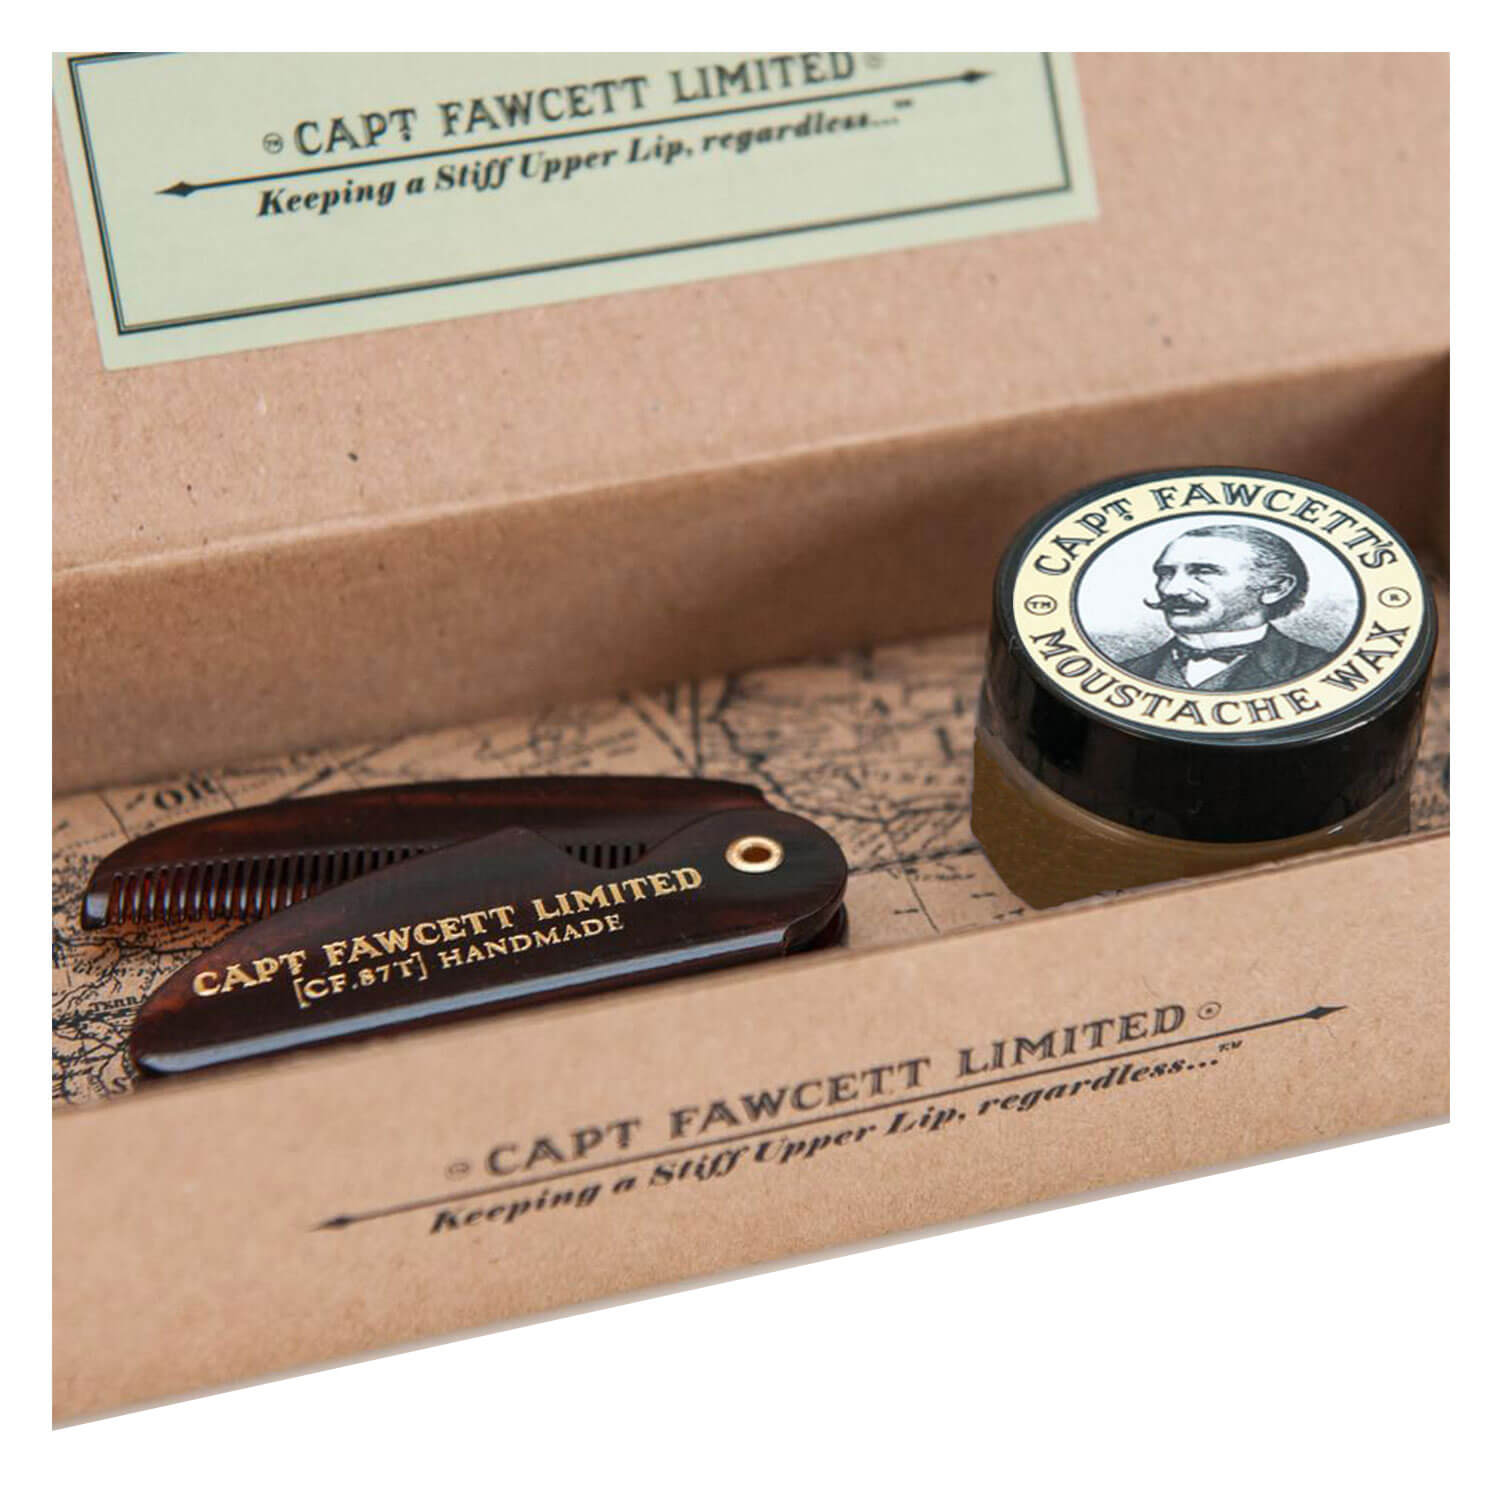 Capt. Fawcett Care - Sandalwood Moustache Wax & Folding Pocket Moustache Comb Kit